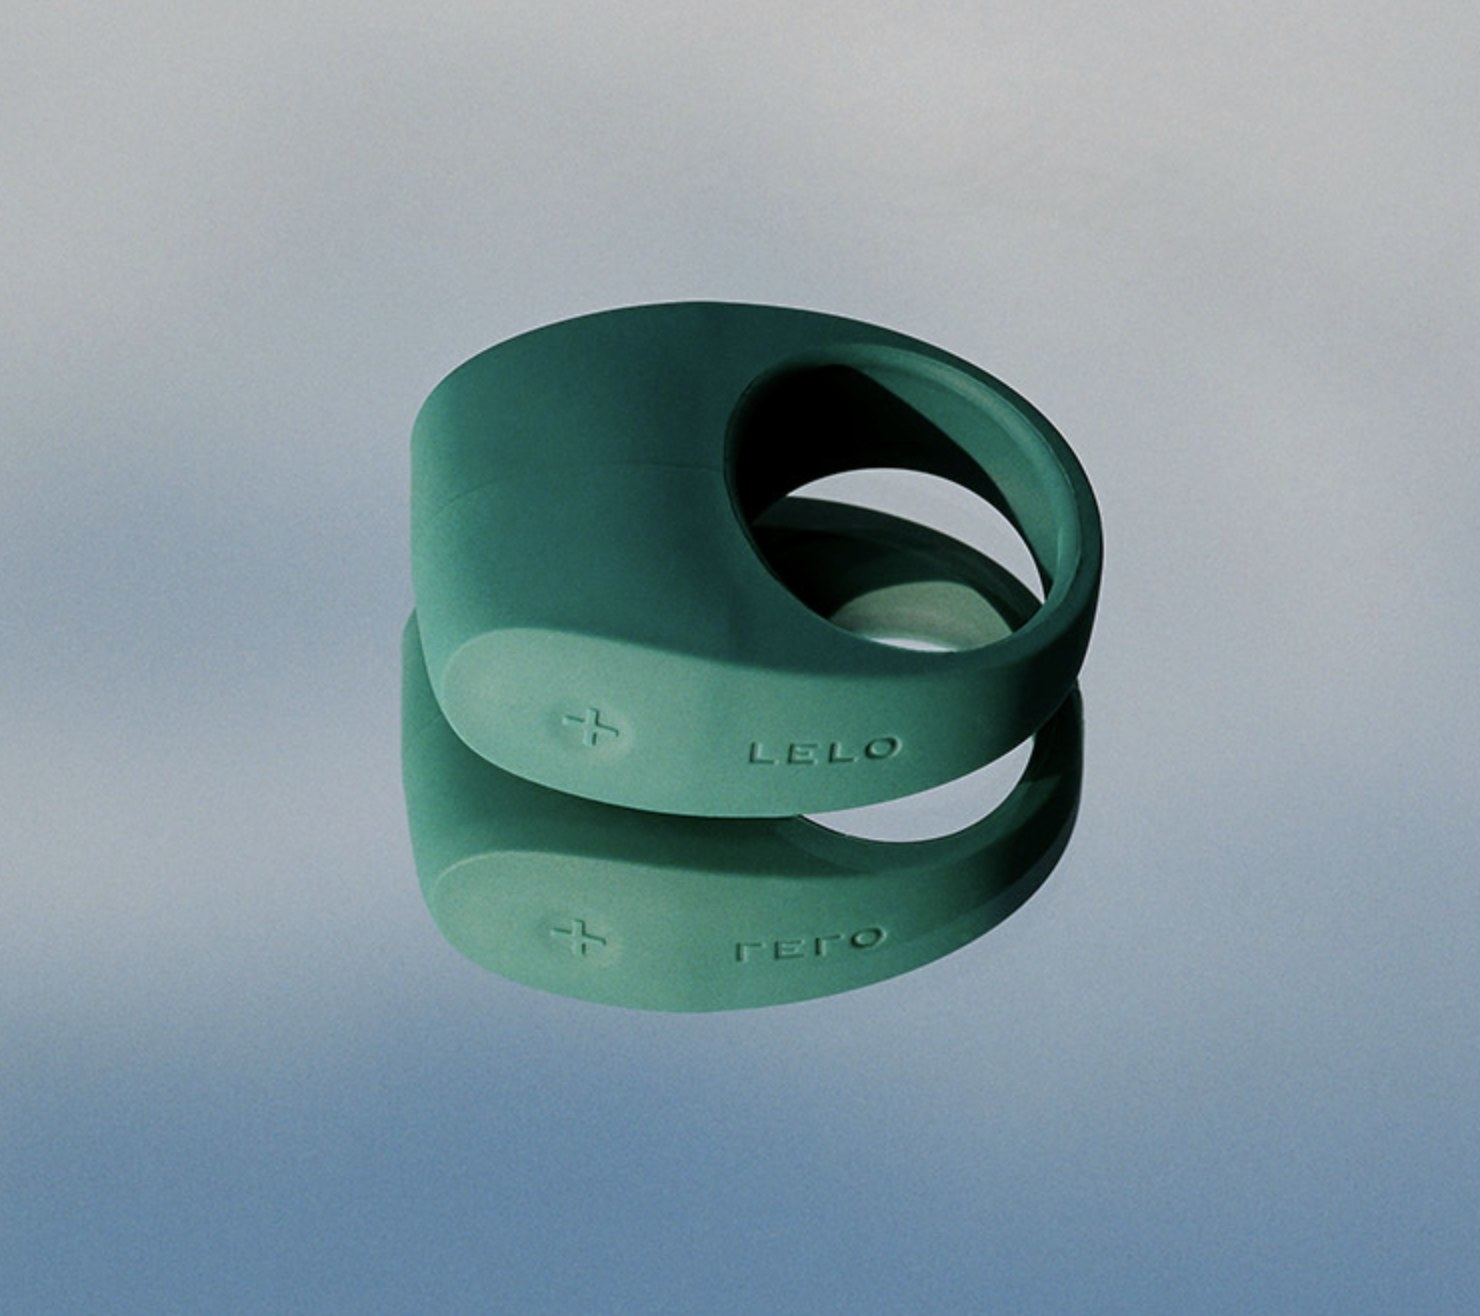 A green cock ring